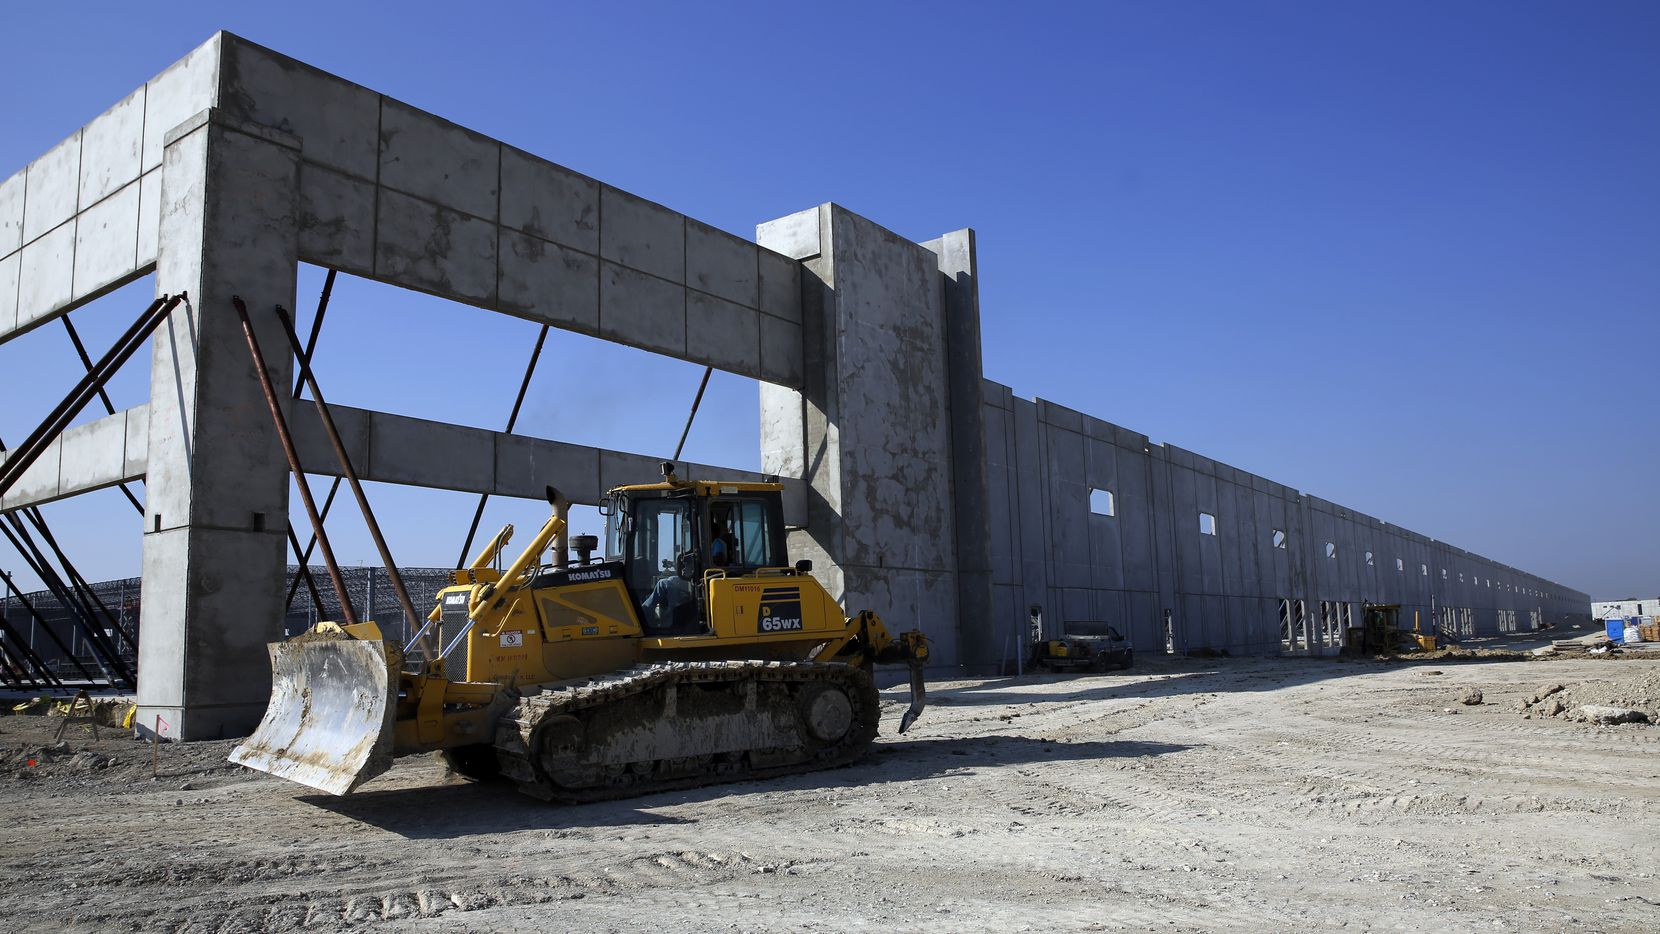 About 20 million square feet of warehouse space is being built in North Texas.